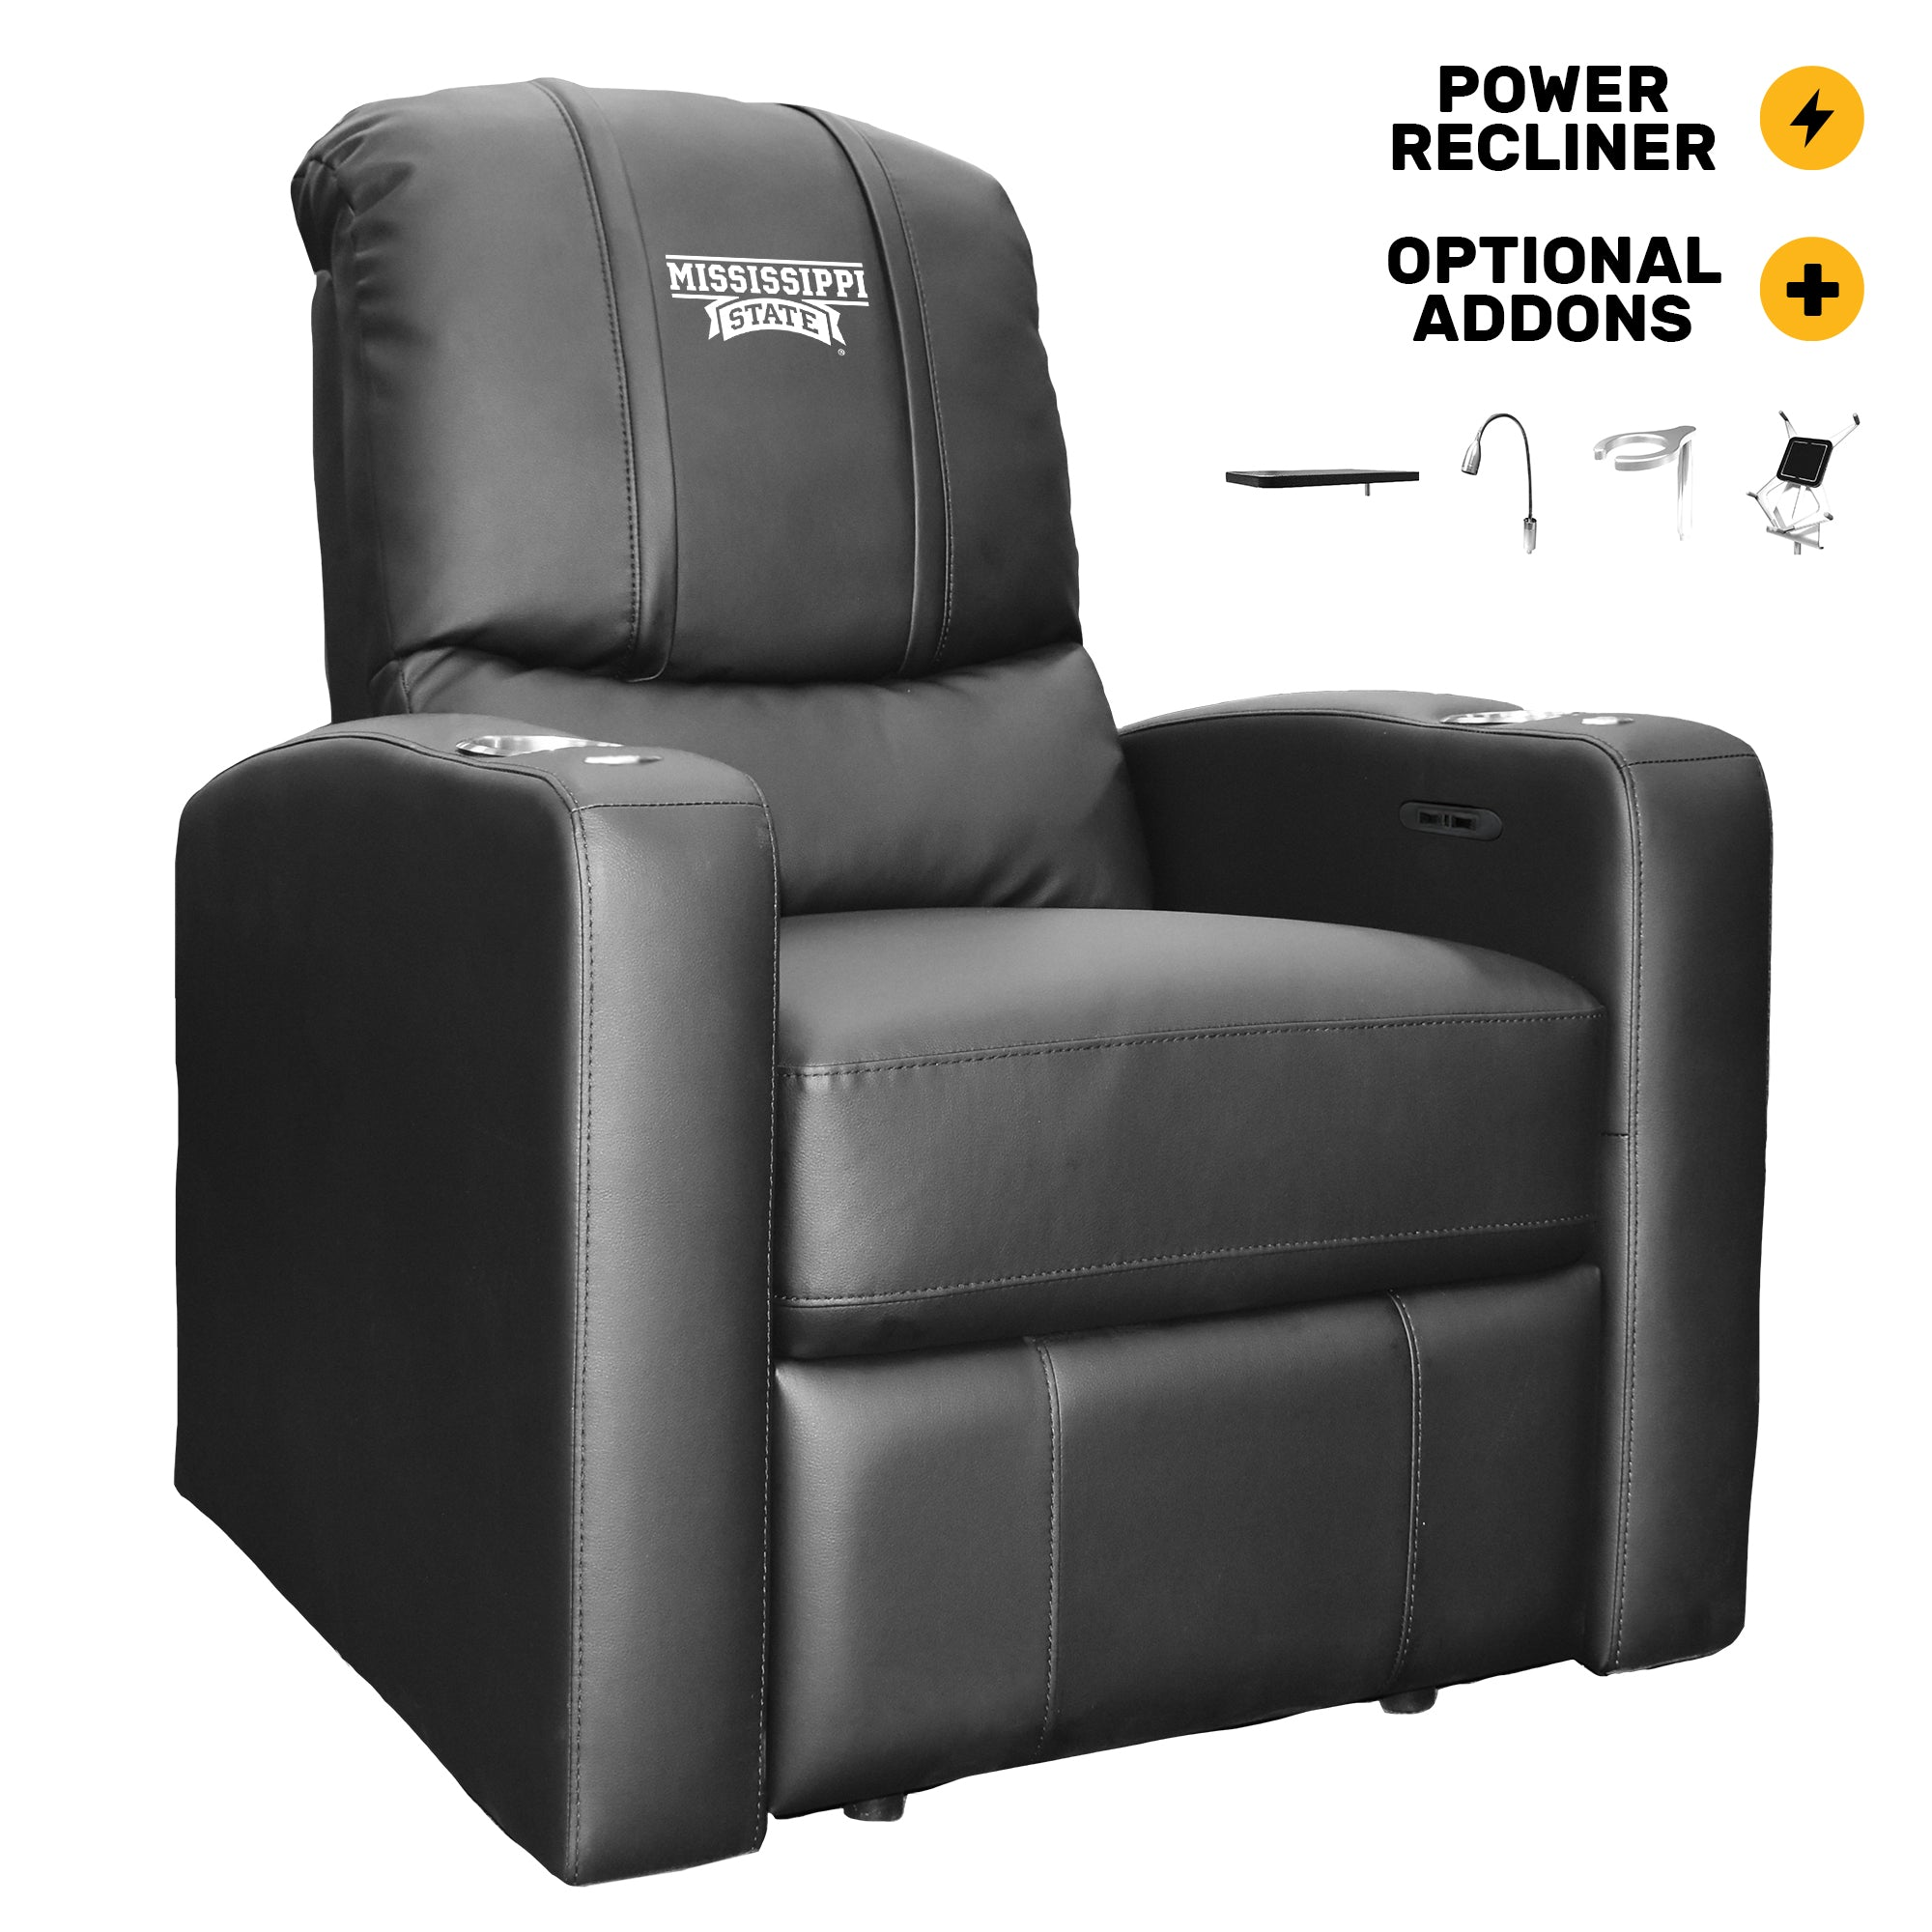 Stealth Power Recliner with Mississippi State Alternate